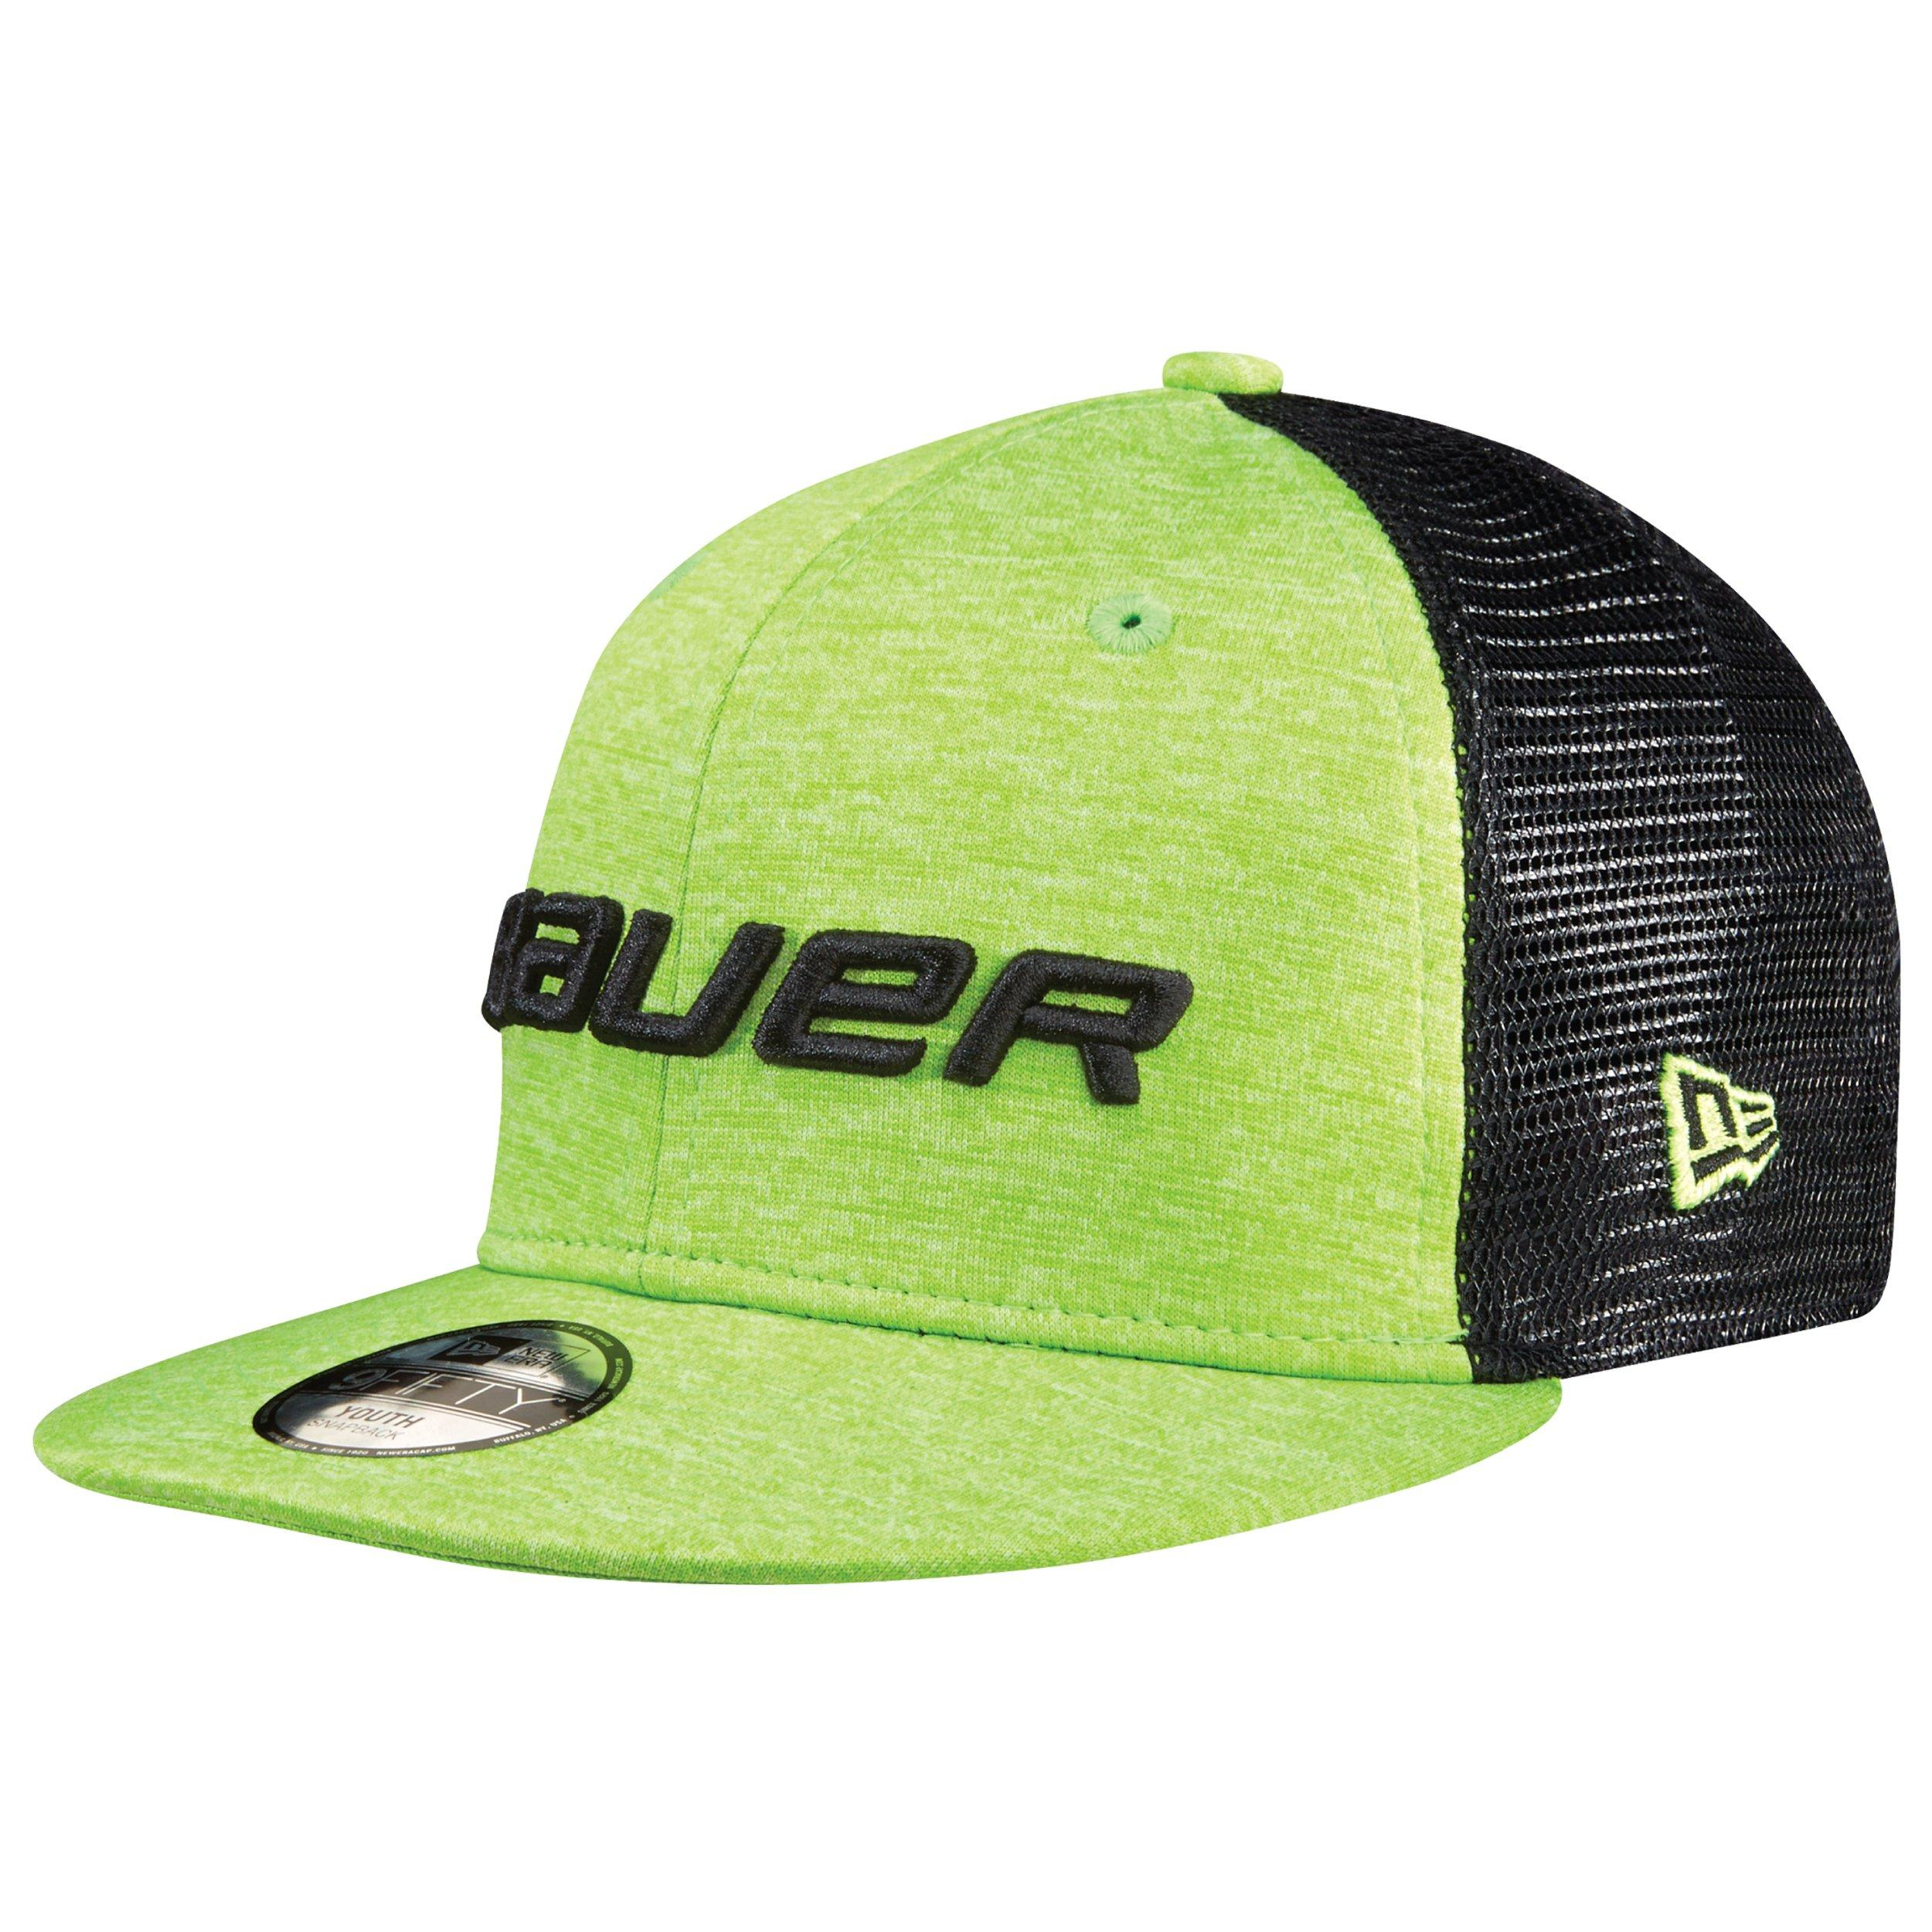 BAUER / New Era® 9FIFTY® Color Pop Adjustable Cap Youth,,Medium